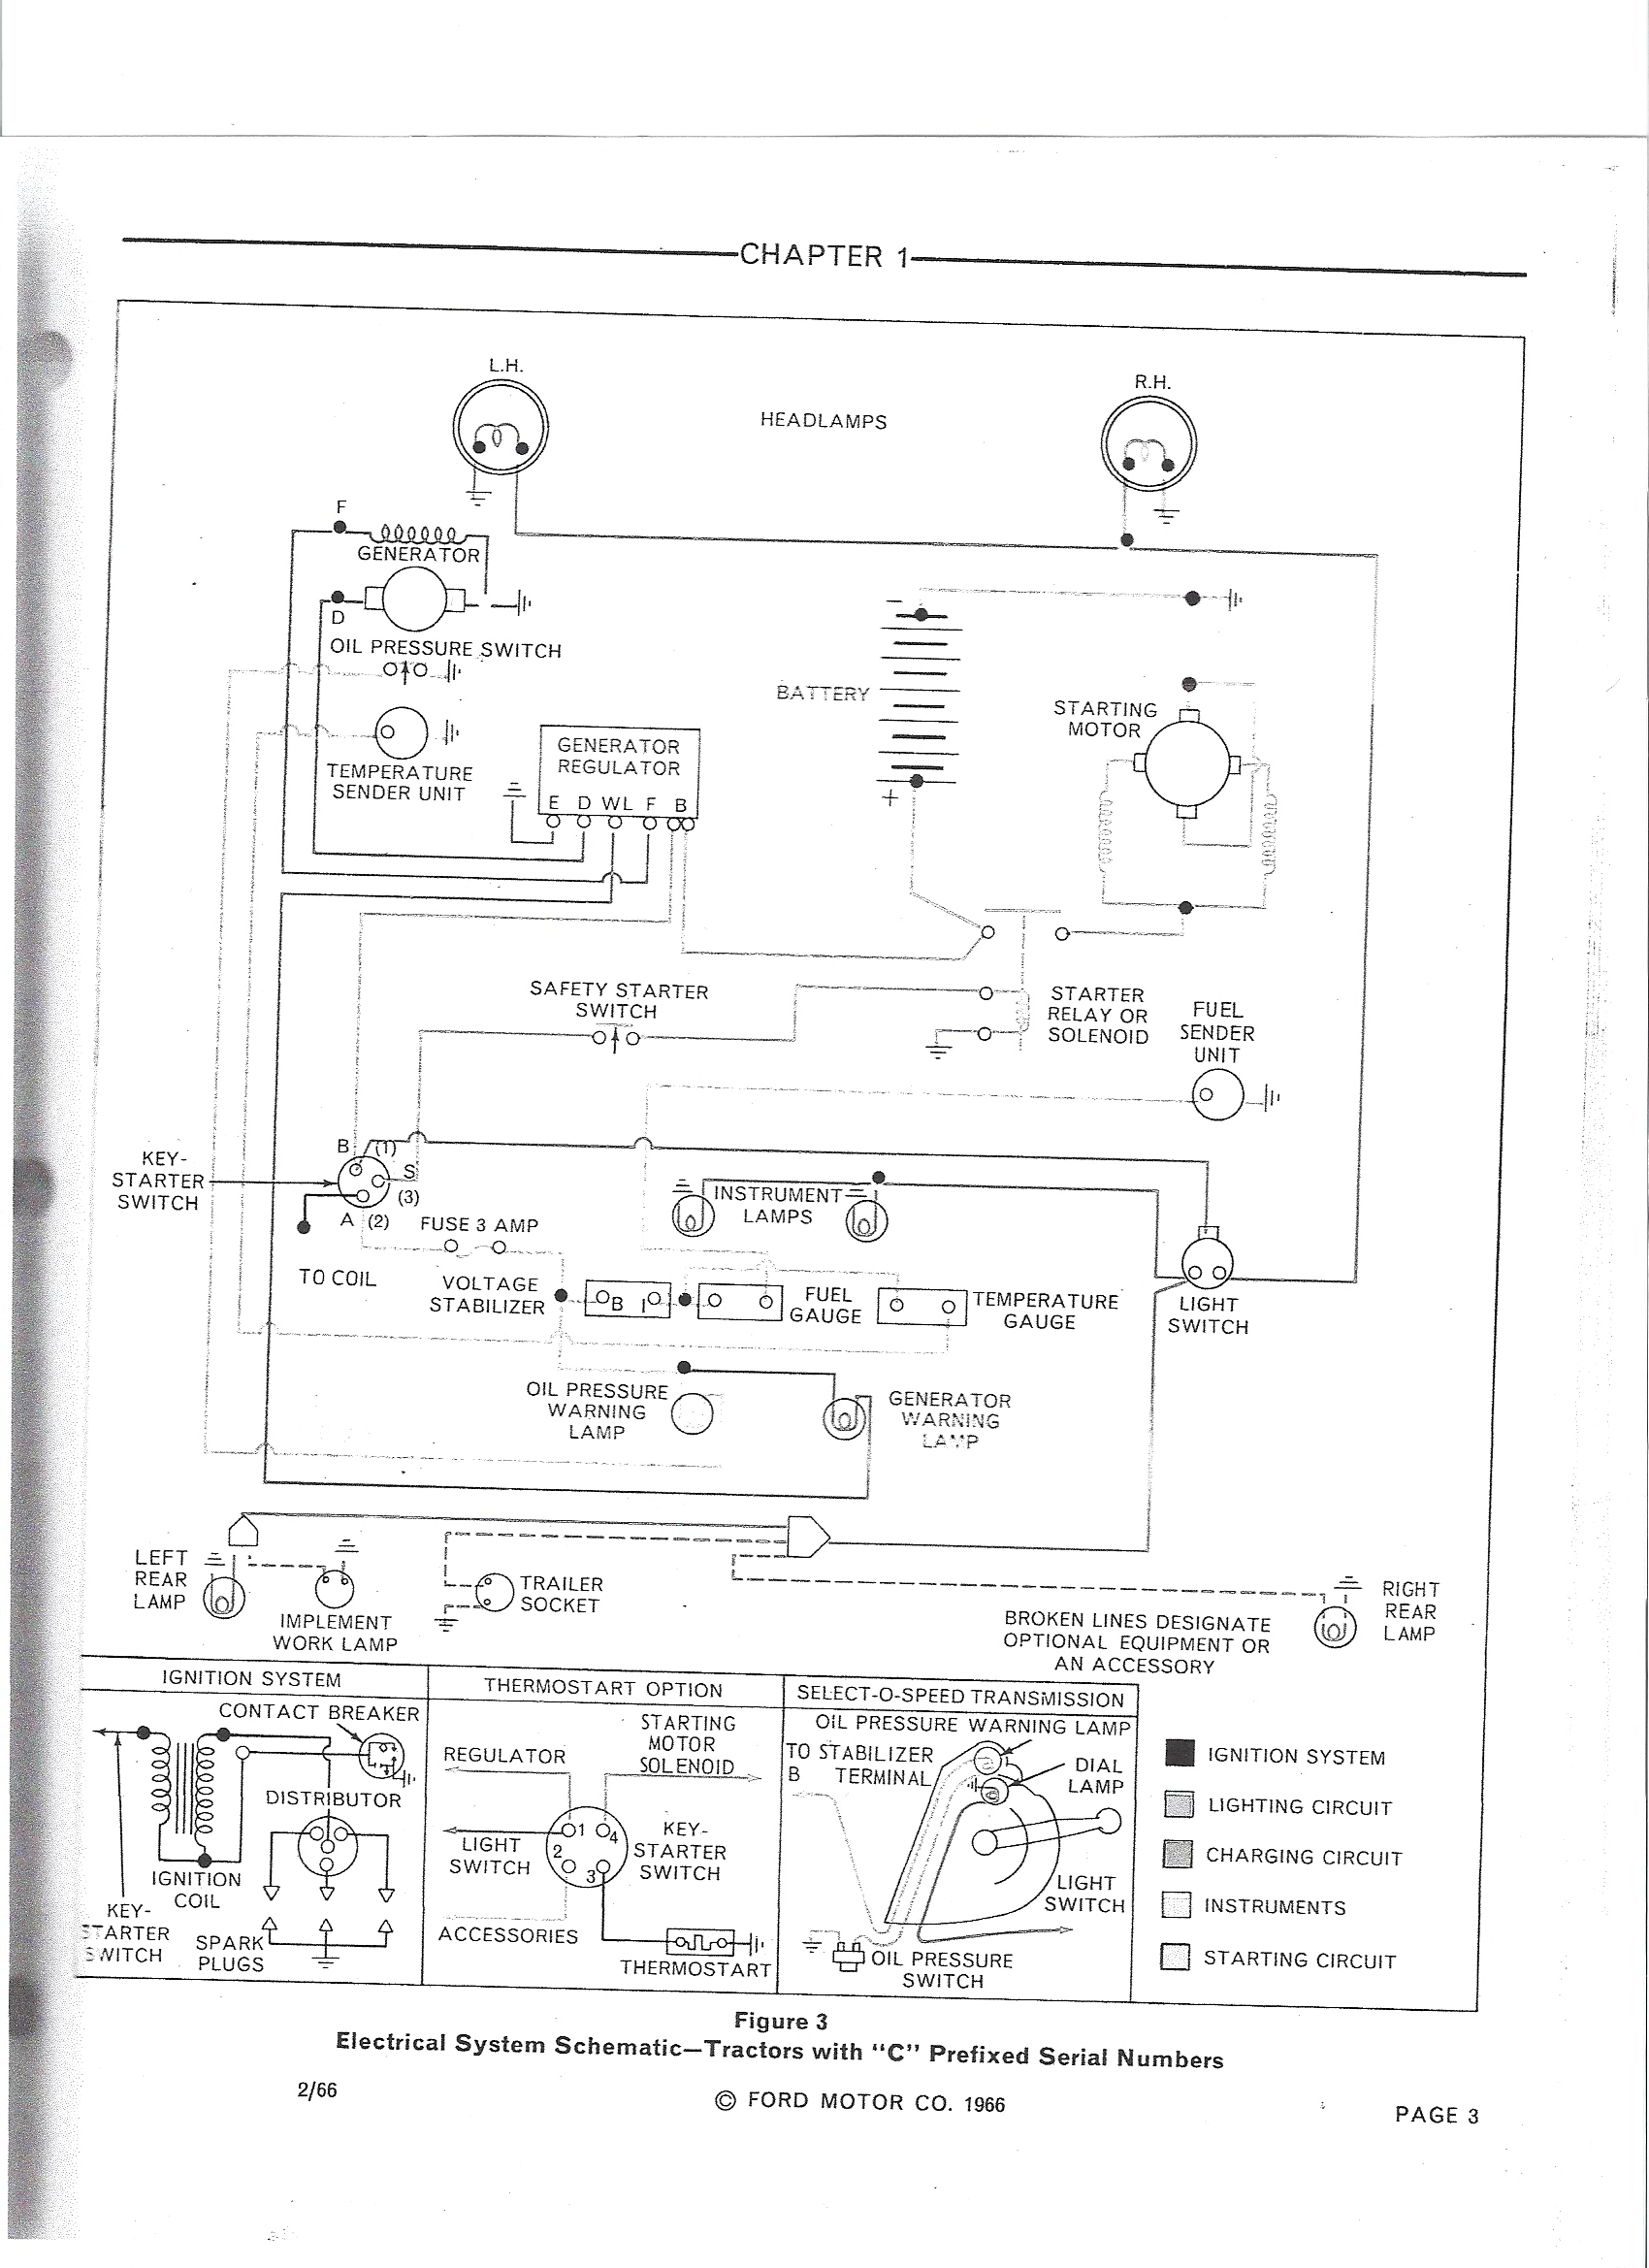 Where Can I Find A Wiring Diagram For A Ford 3400 Tractor